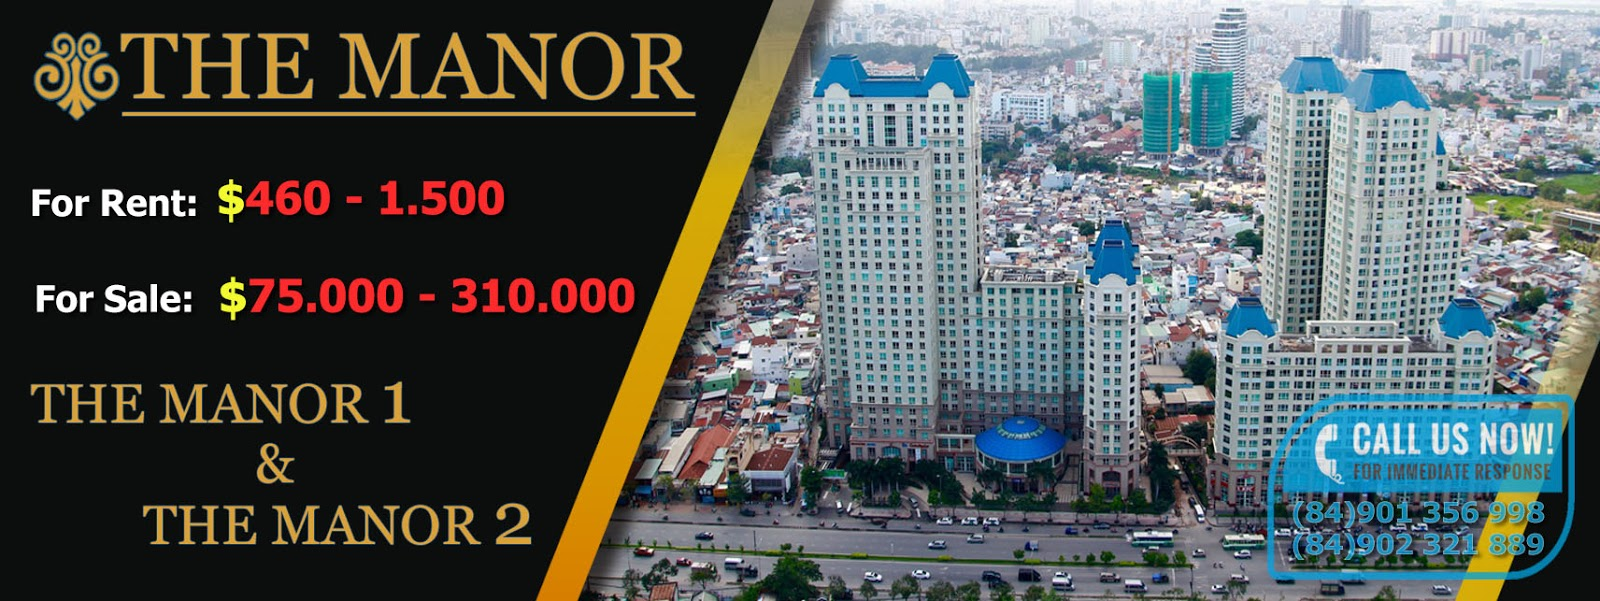 banner-the-manor-apartment-for-rent-for-sale